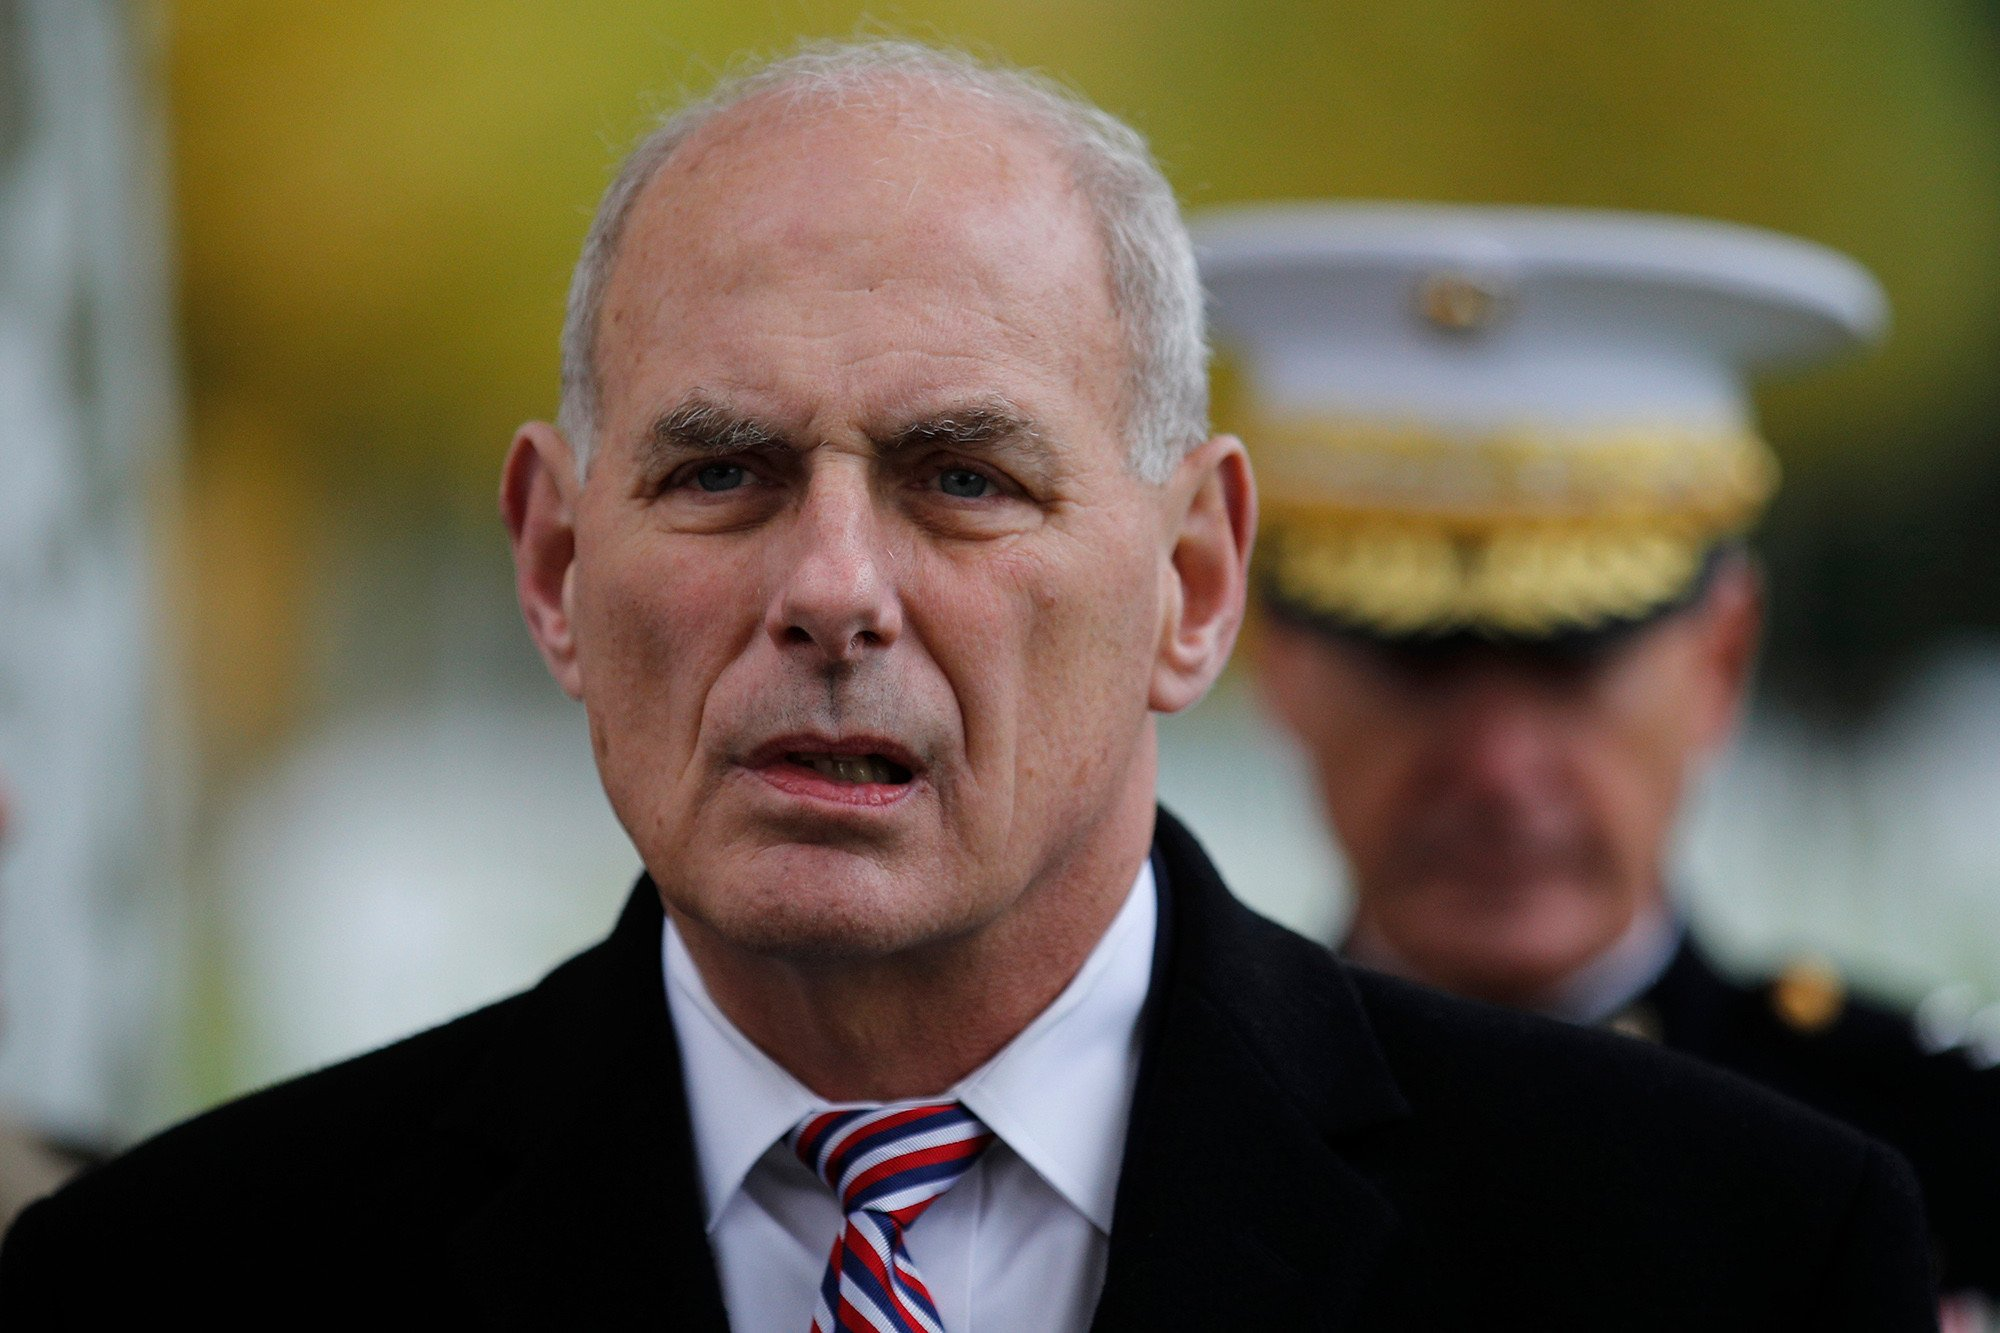 Trump says John Kelly to leave White House post by end of year